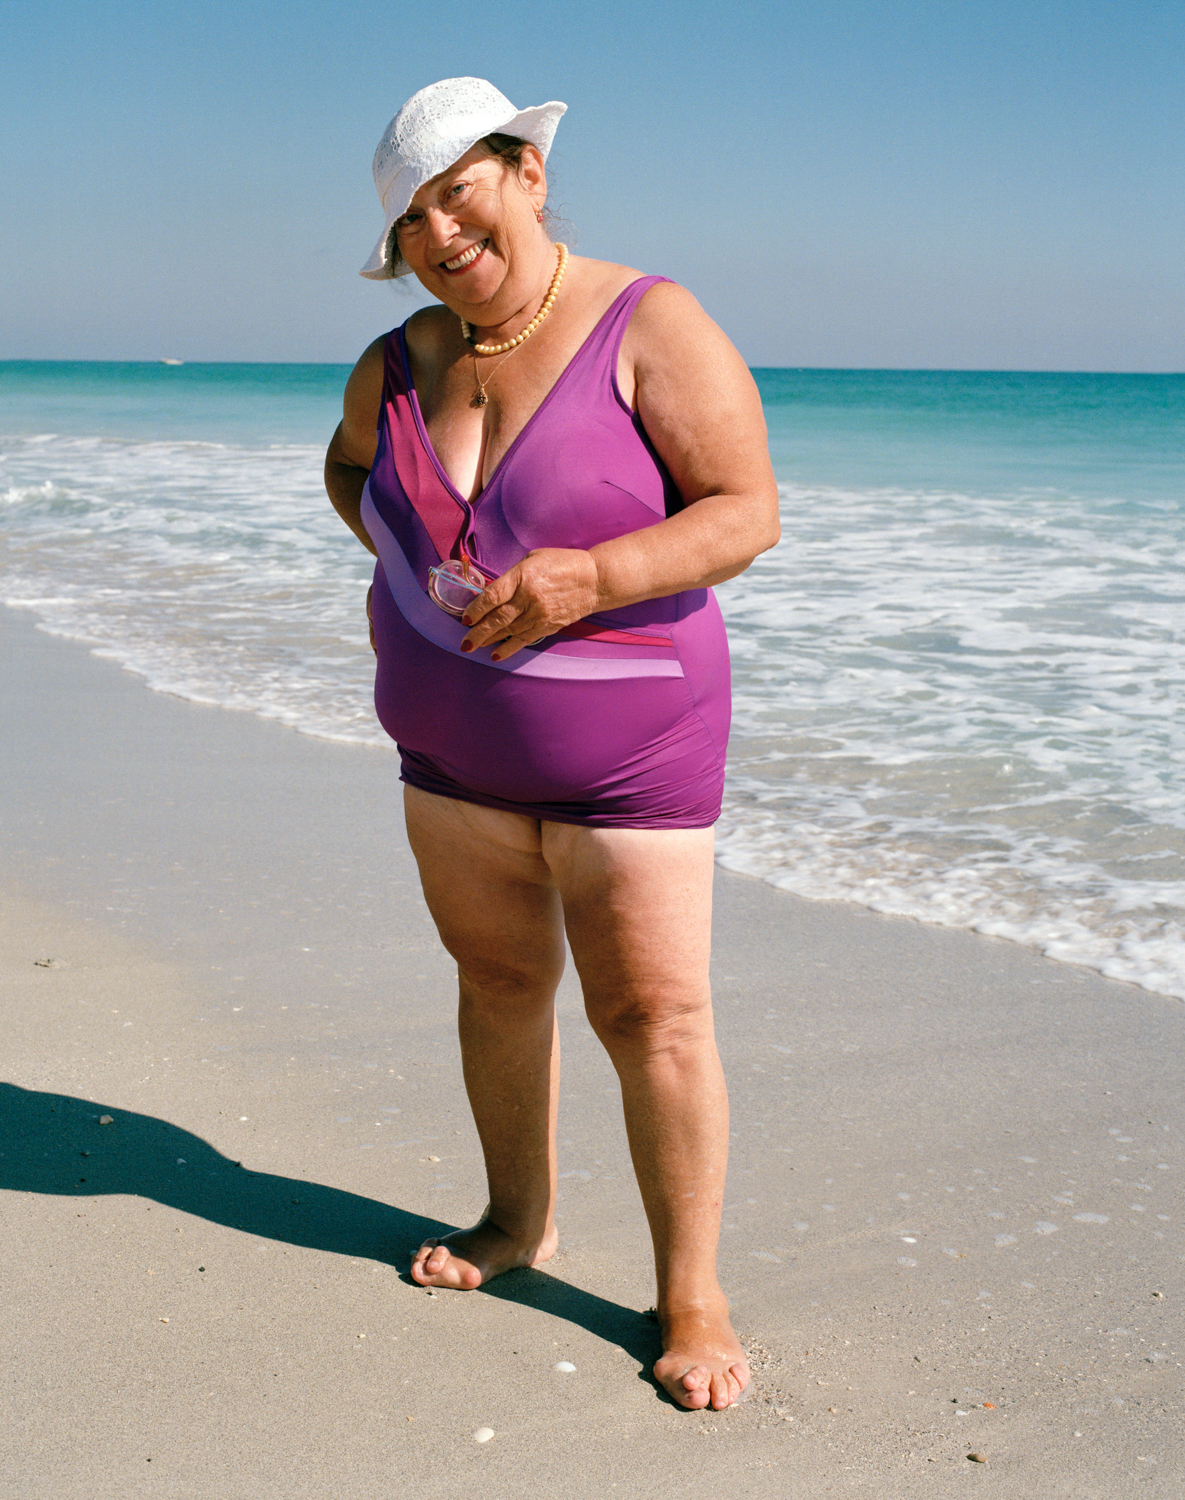 Untitled (Woman in Purple Bathing Suit) Miami - South Beach 1982/1985